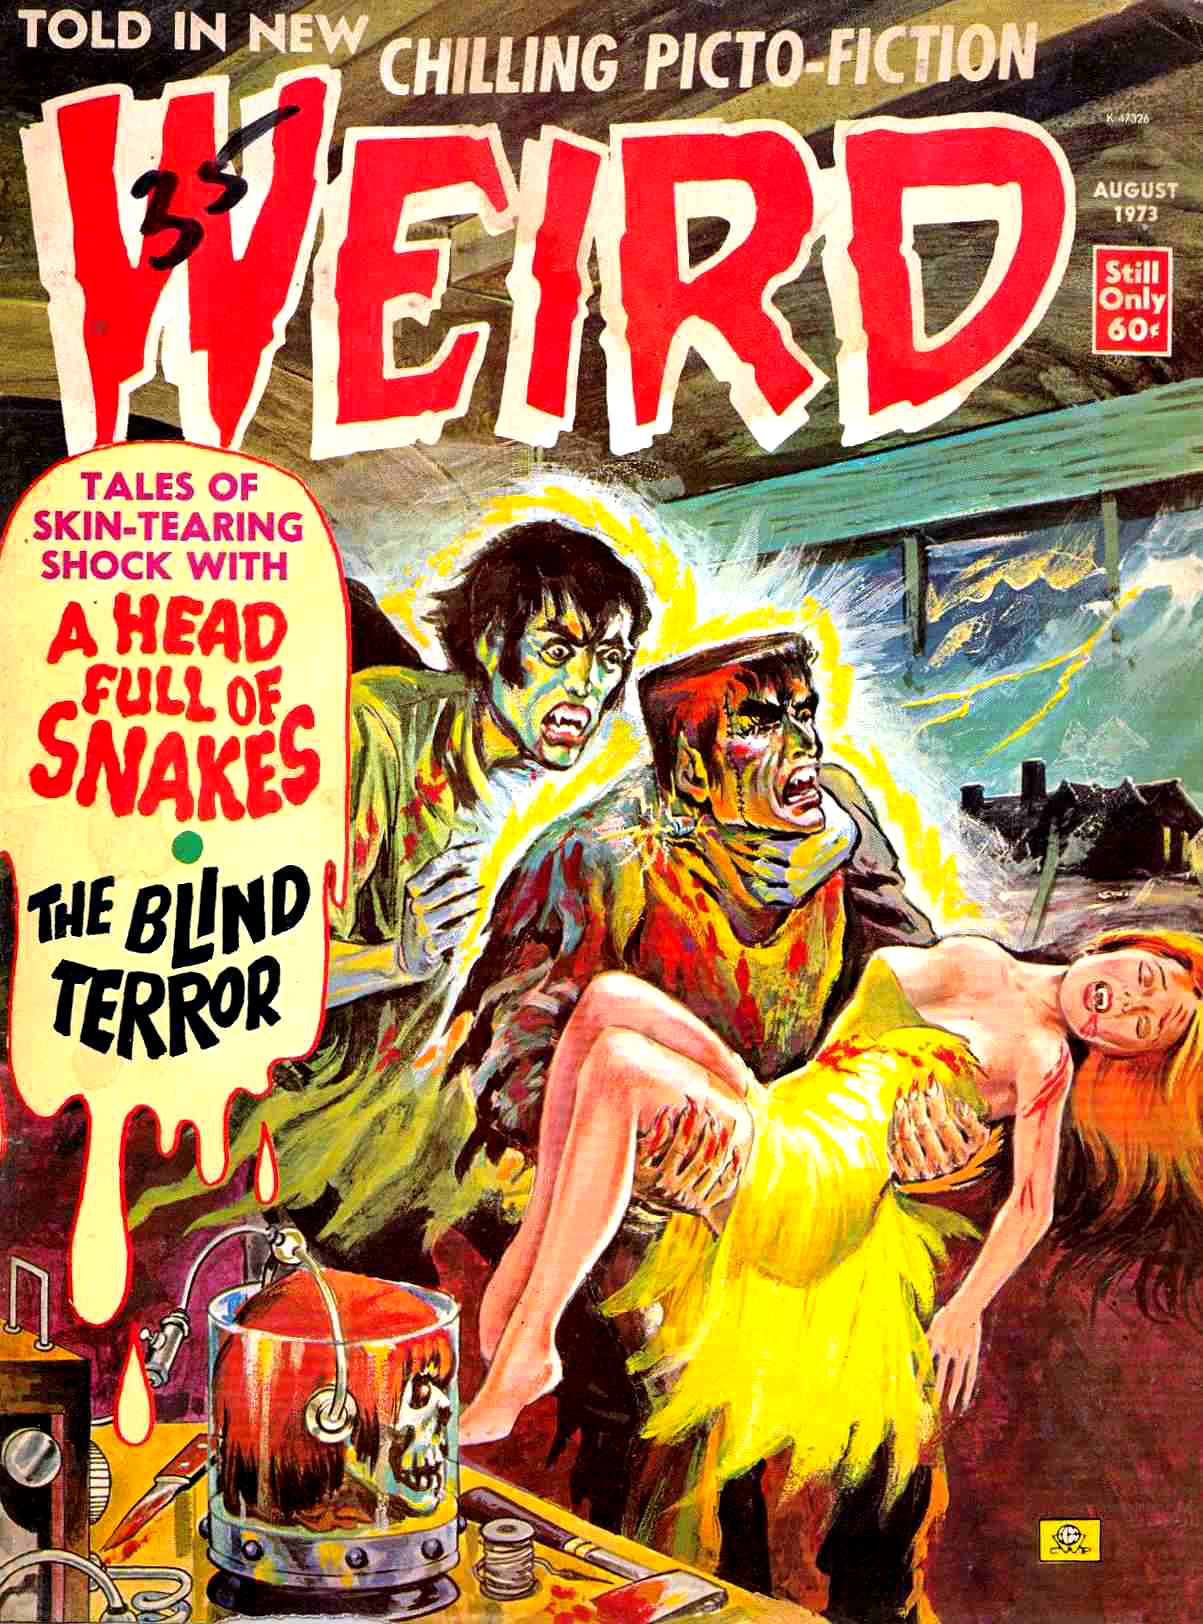 Weird Vol. 07 #5 (Eerie Publications, 1973)